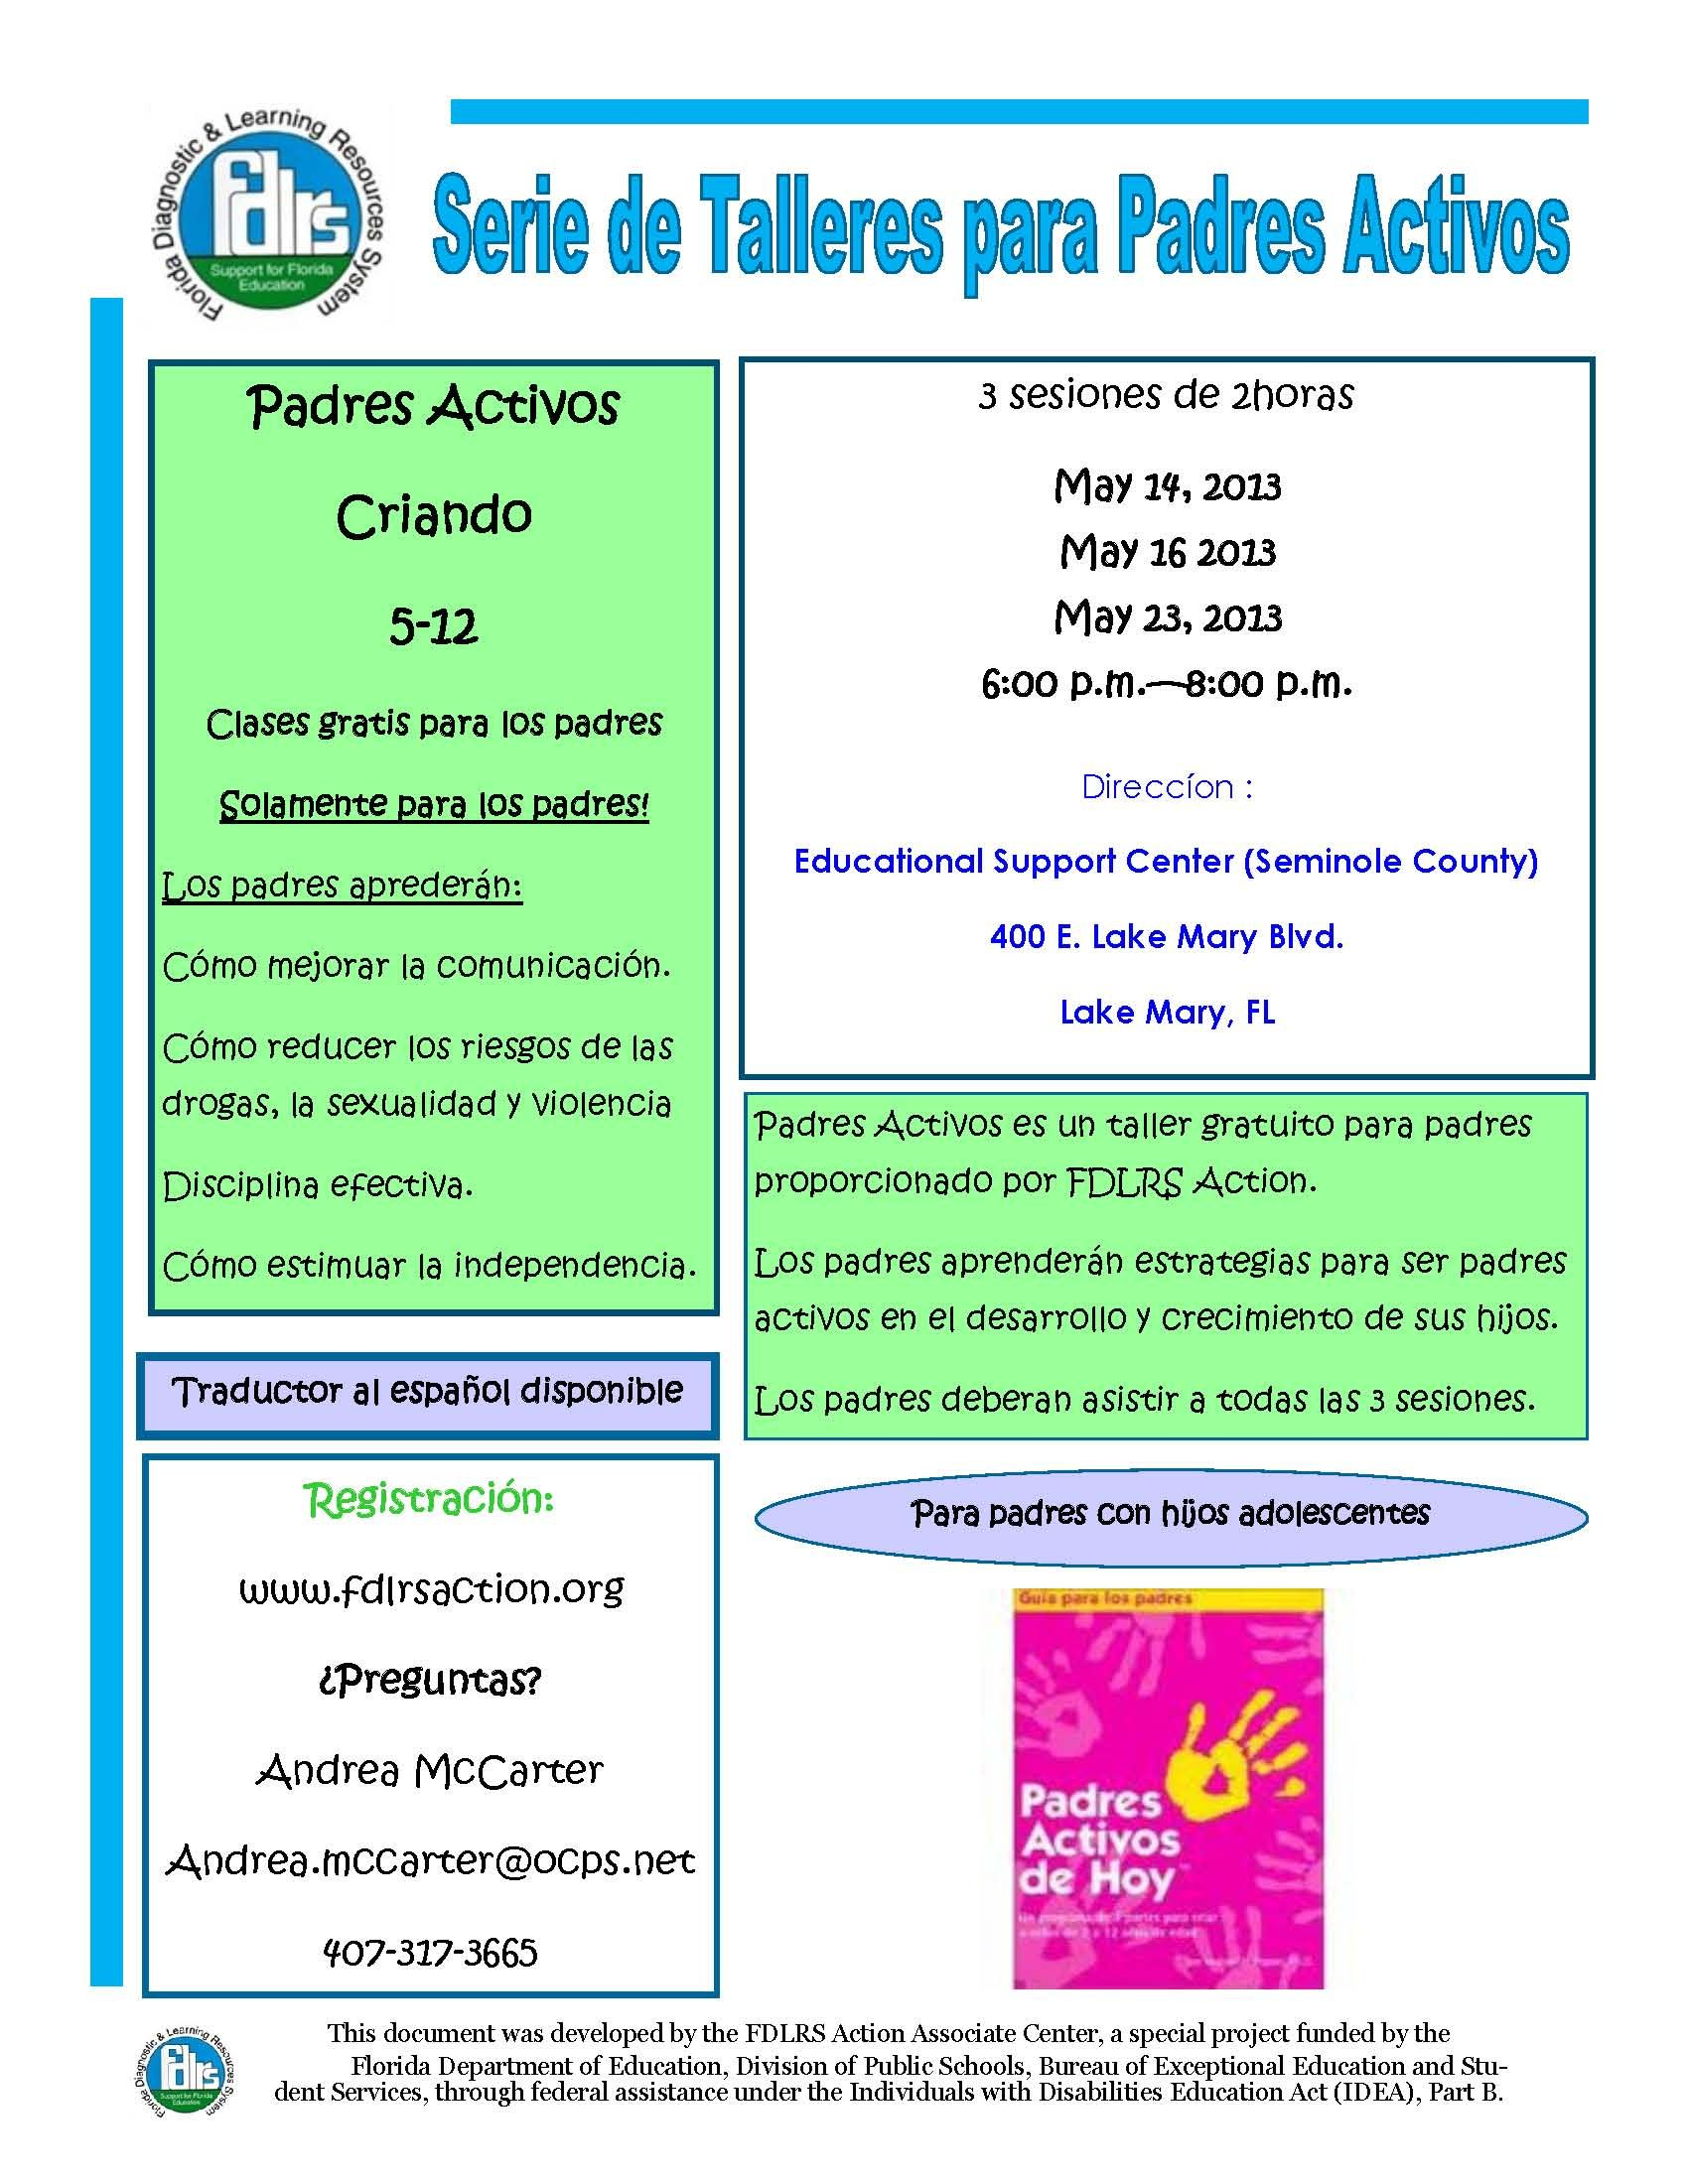 FDLRS is offering a FREE 3-part parenting workshop for parents of children ages 5-12. Parents do not need to be residents of Seminole county to attend. The workshop is free and Spanish translation will be available. Child care is not being offered for this event. Registration: www.fdlrsaction.org